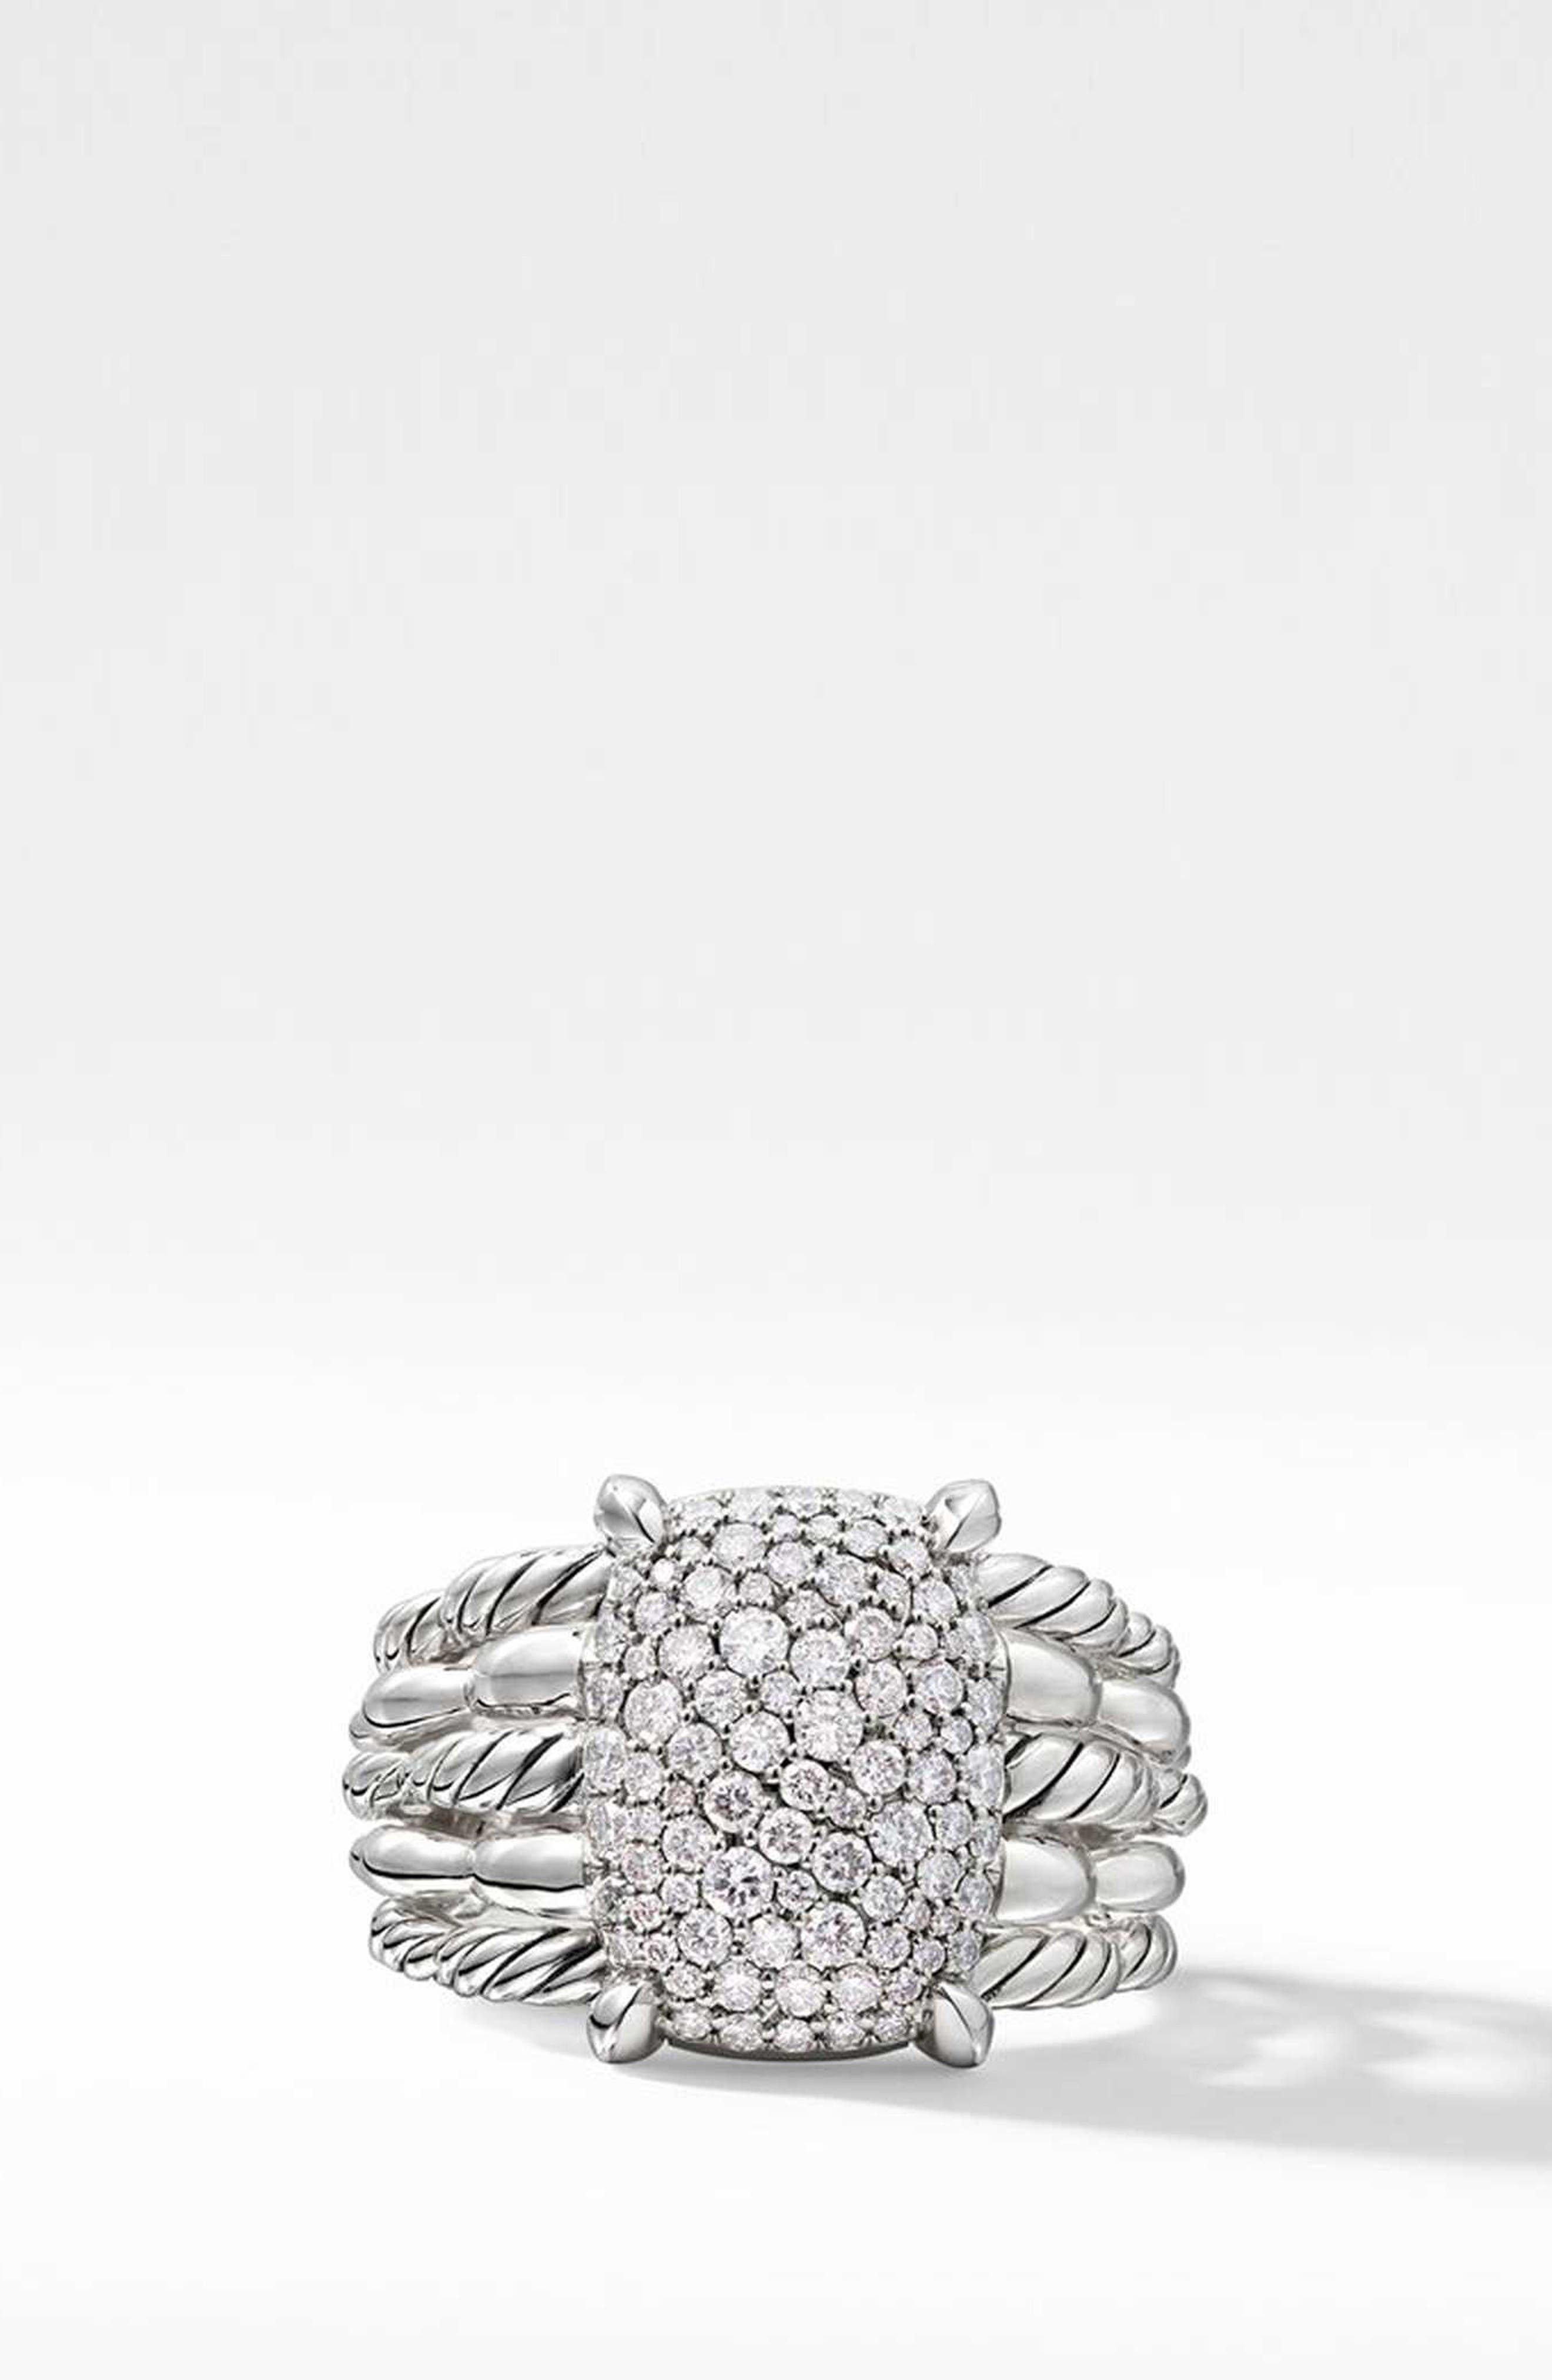 Tides Statement Ring with Pavé Plate,                             Alternate thumbnail 3, color,                             STERLING SILVER/ DIAMOND